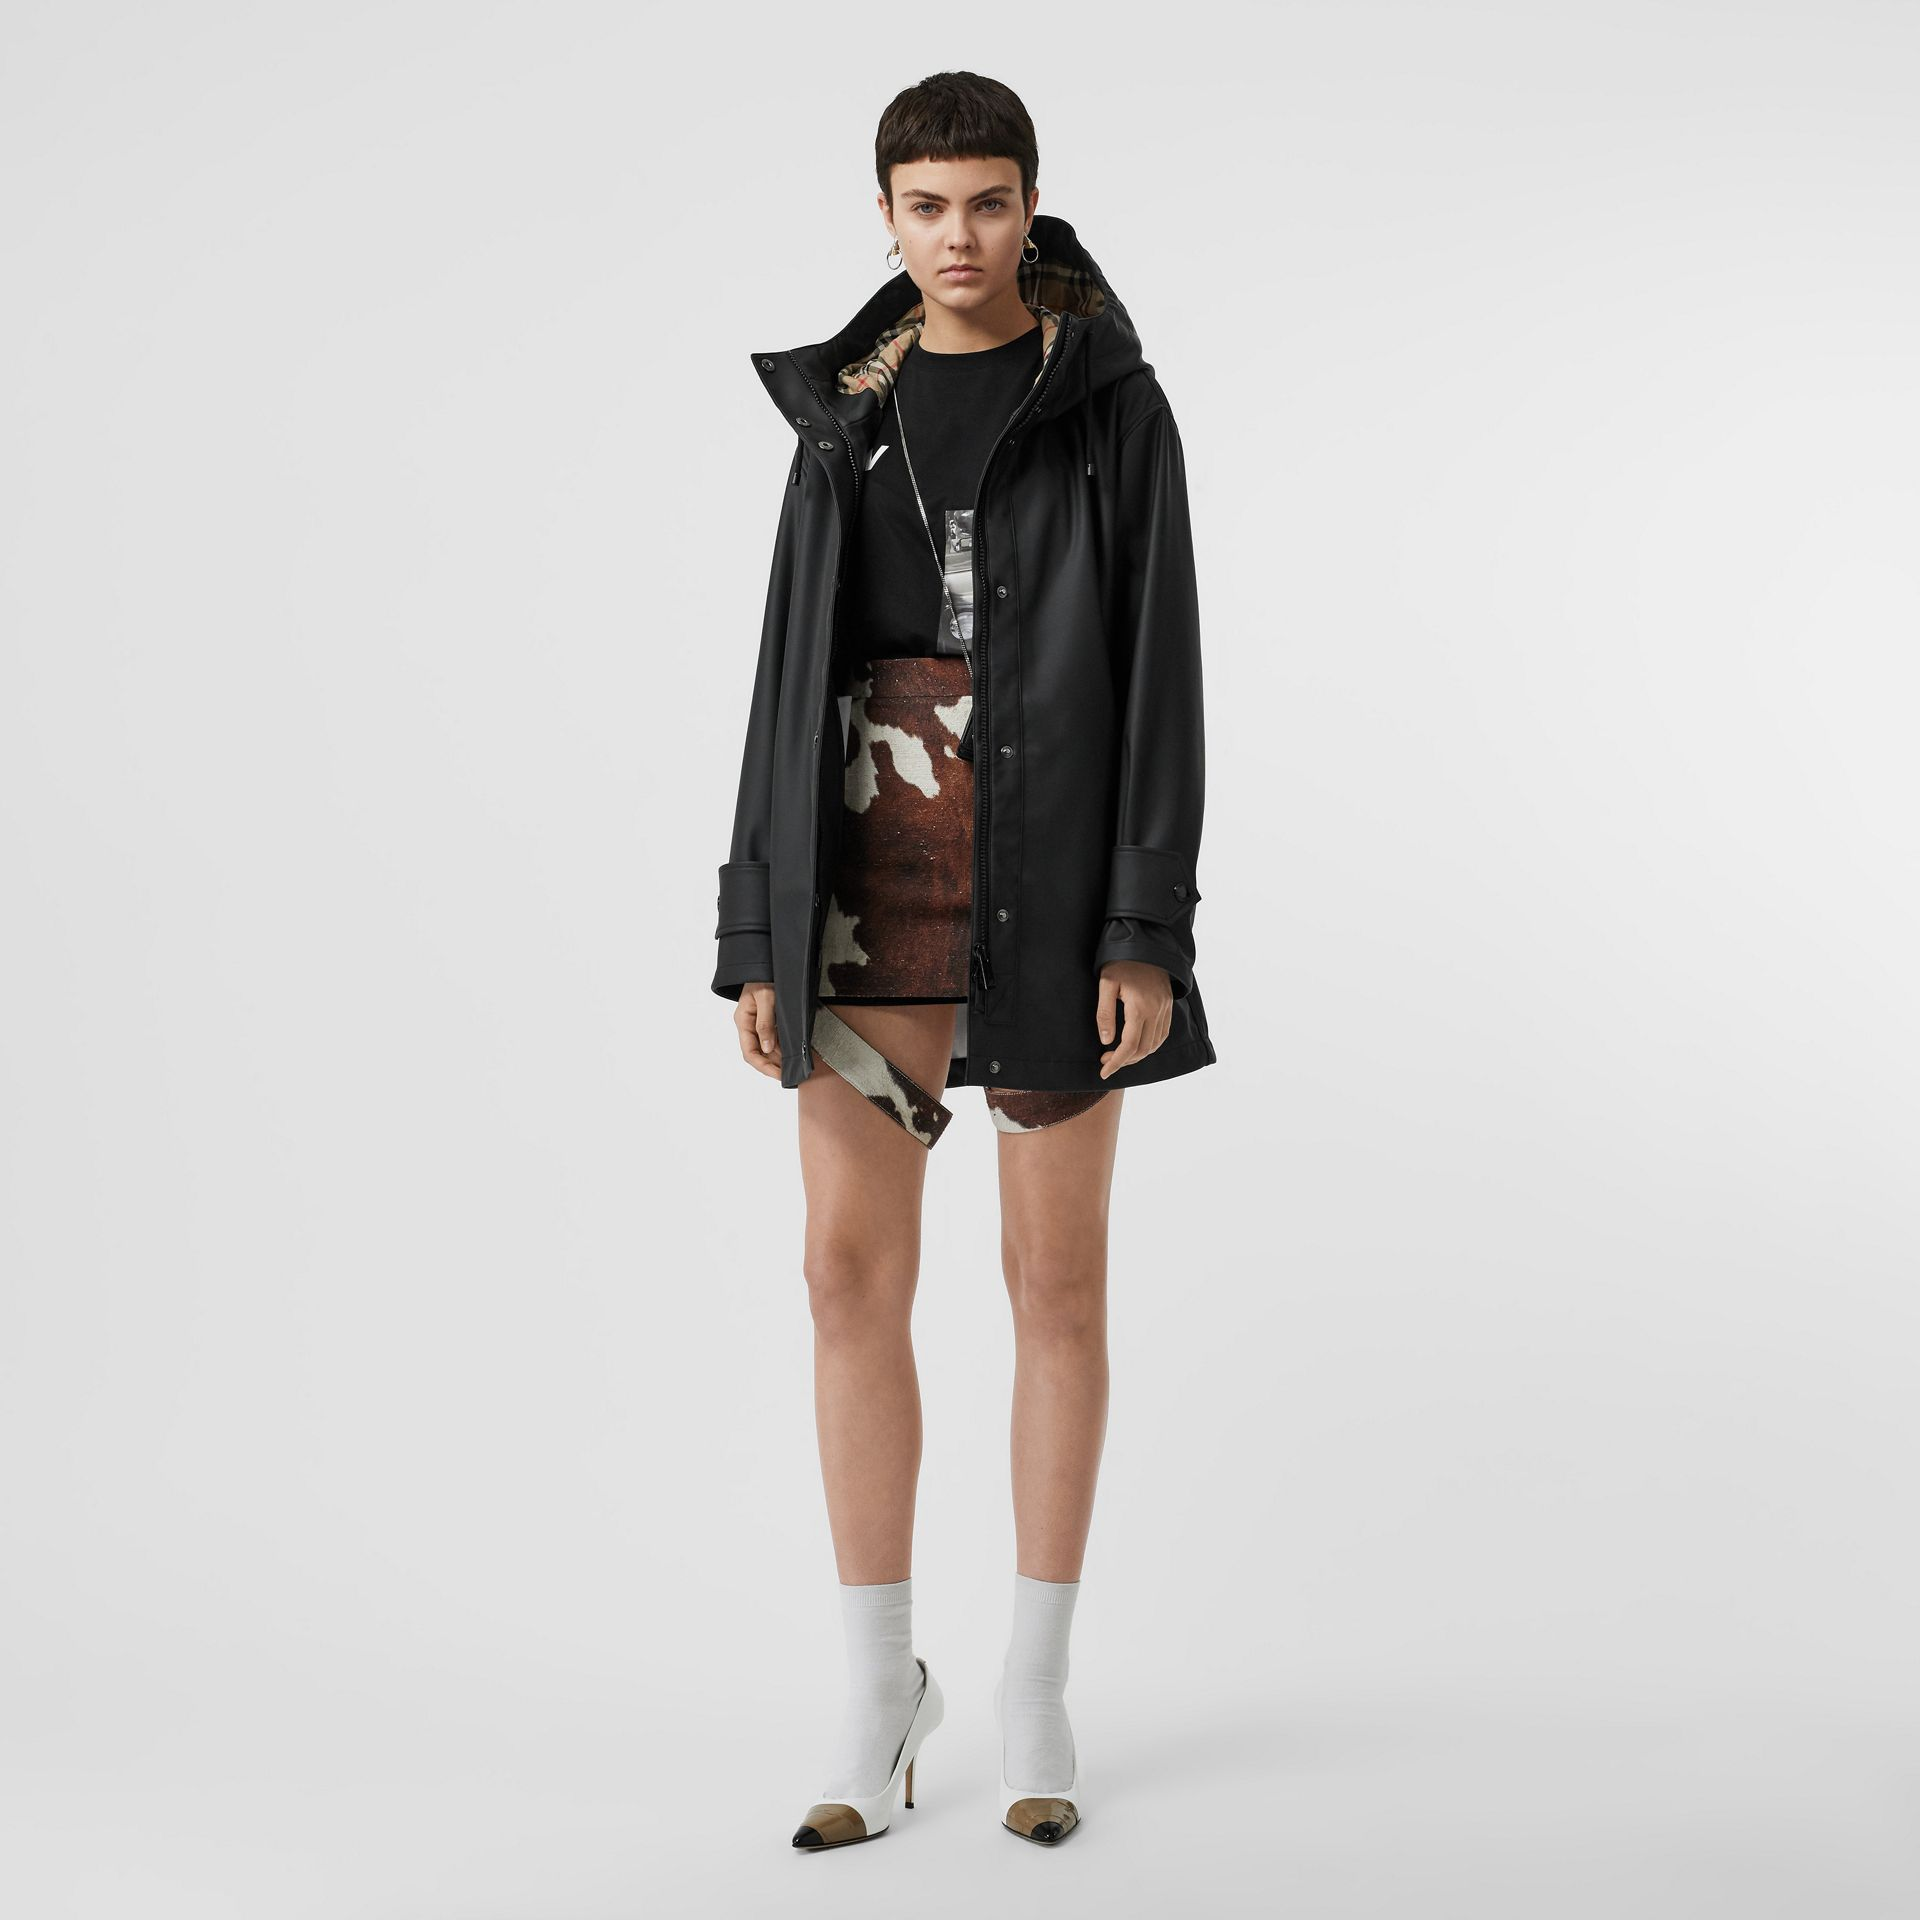 Logo Print Showerproof Hooded Coat in Black/white - Women | Burberry - gallery image 0